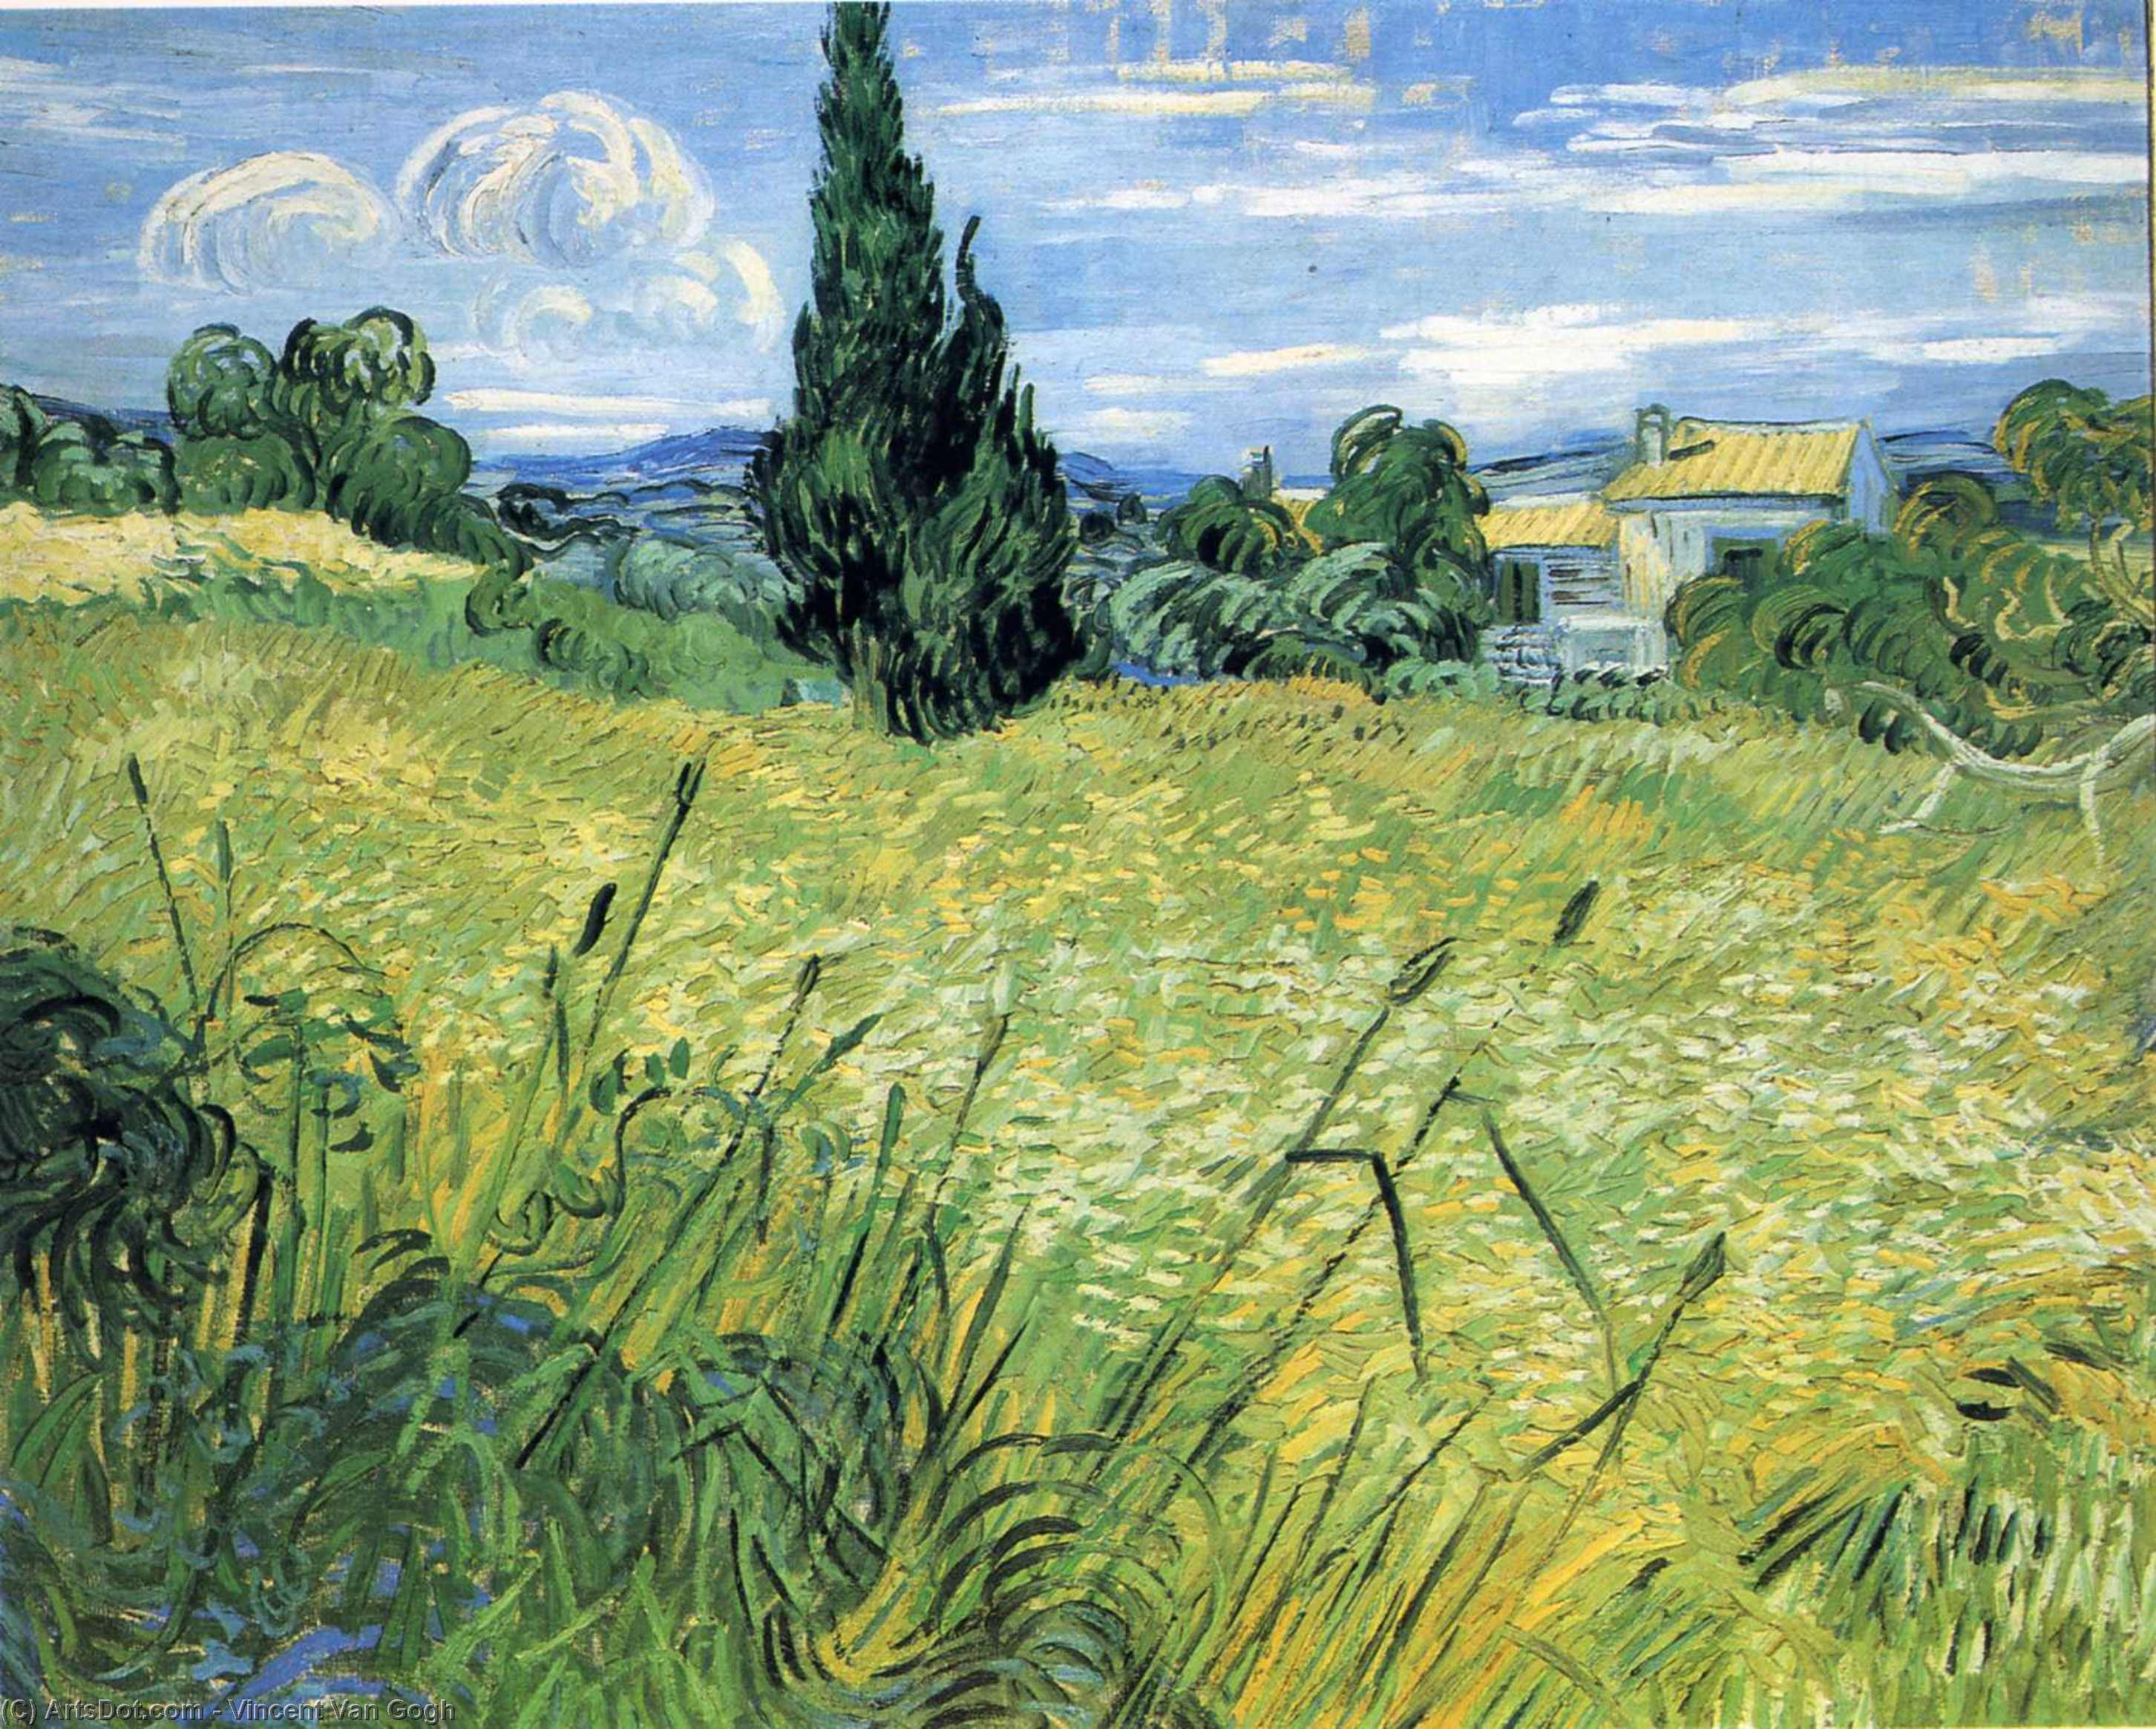 Wikioo.org - The Encyclopedia of Fine Arts - Painting, Artwork by Vincent Van Gogh - Green Wheat Field with Cypress